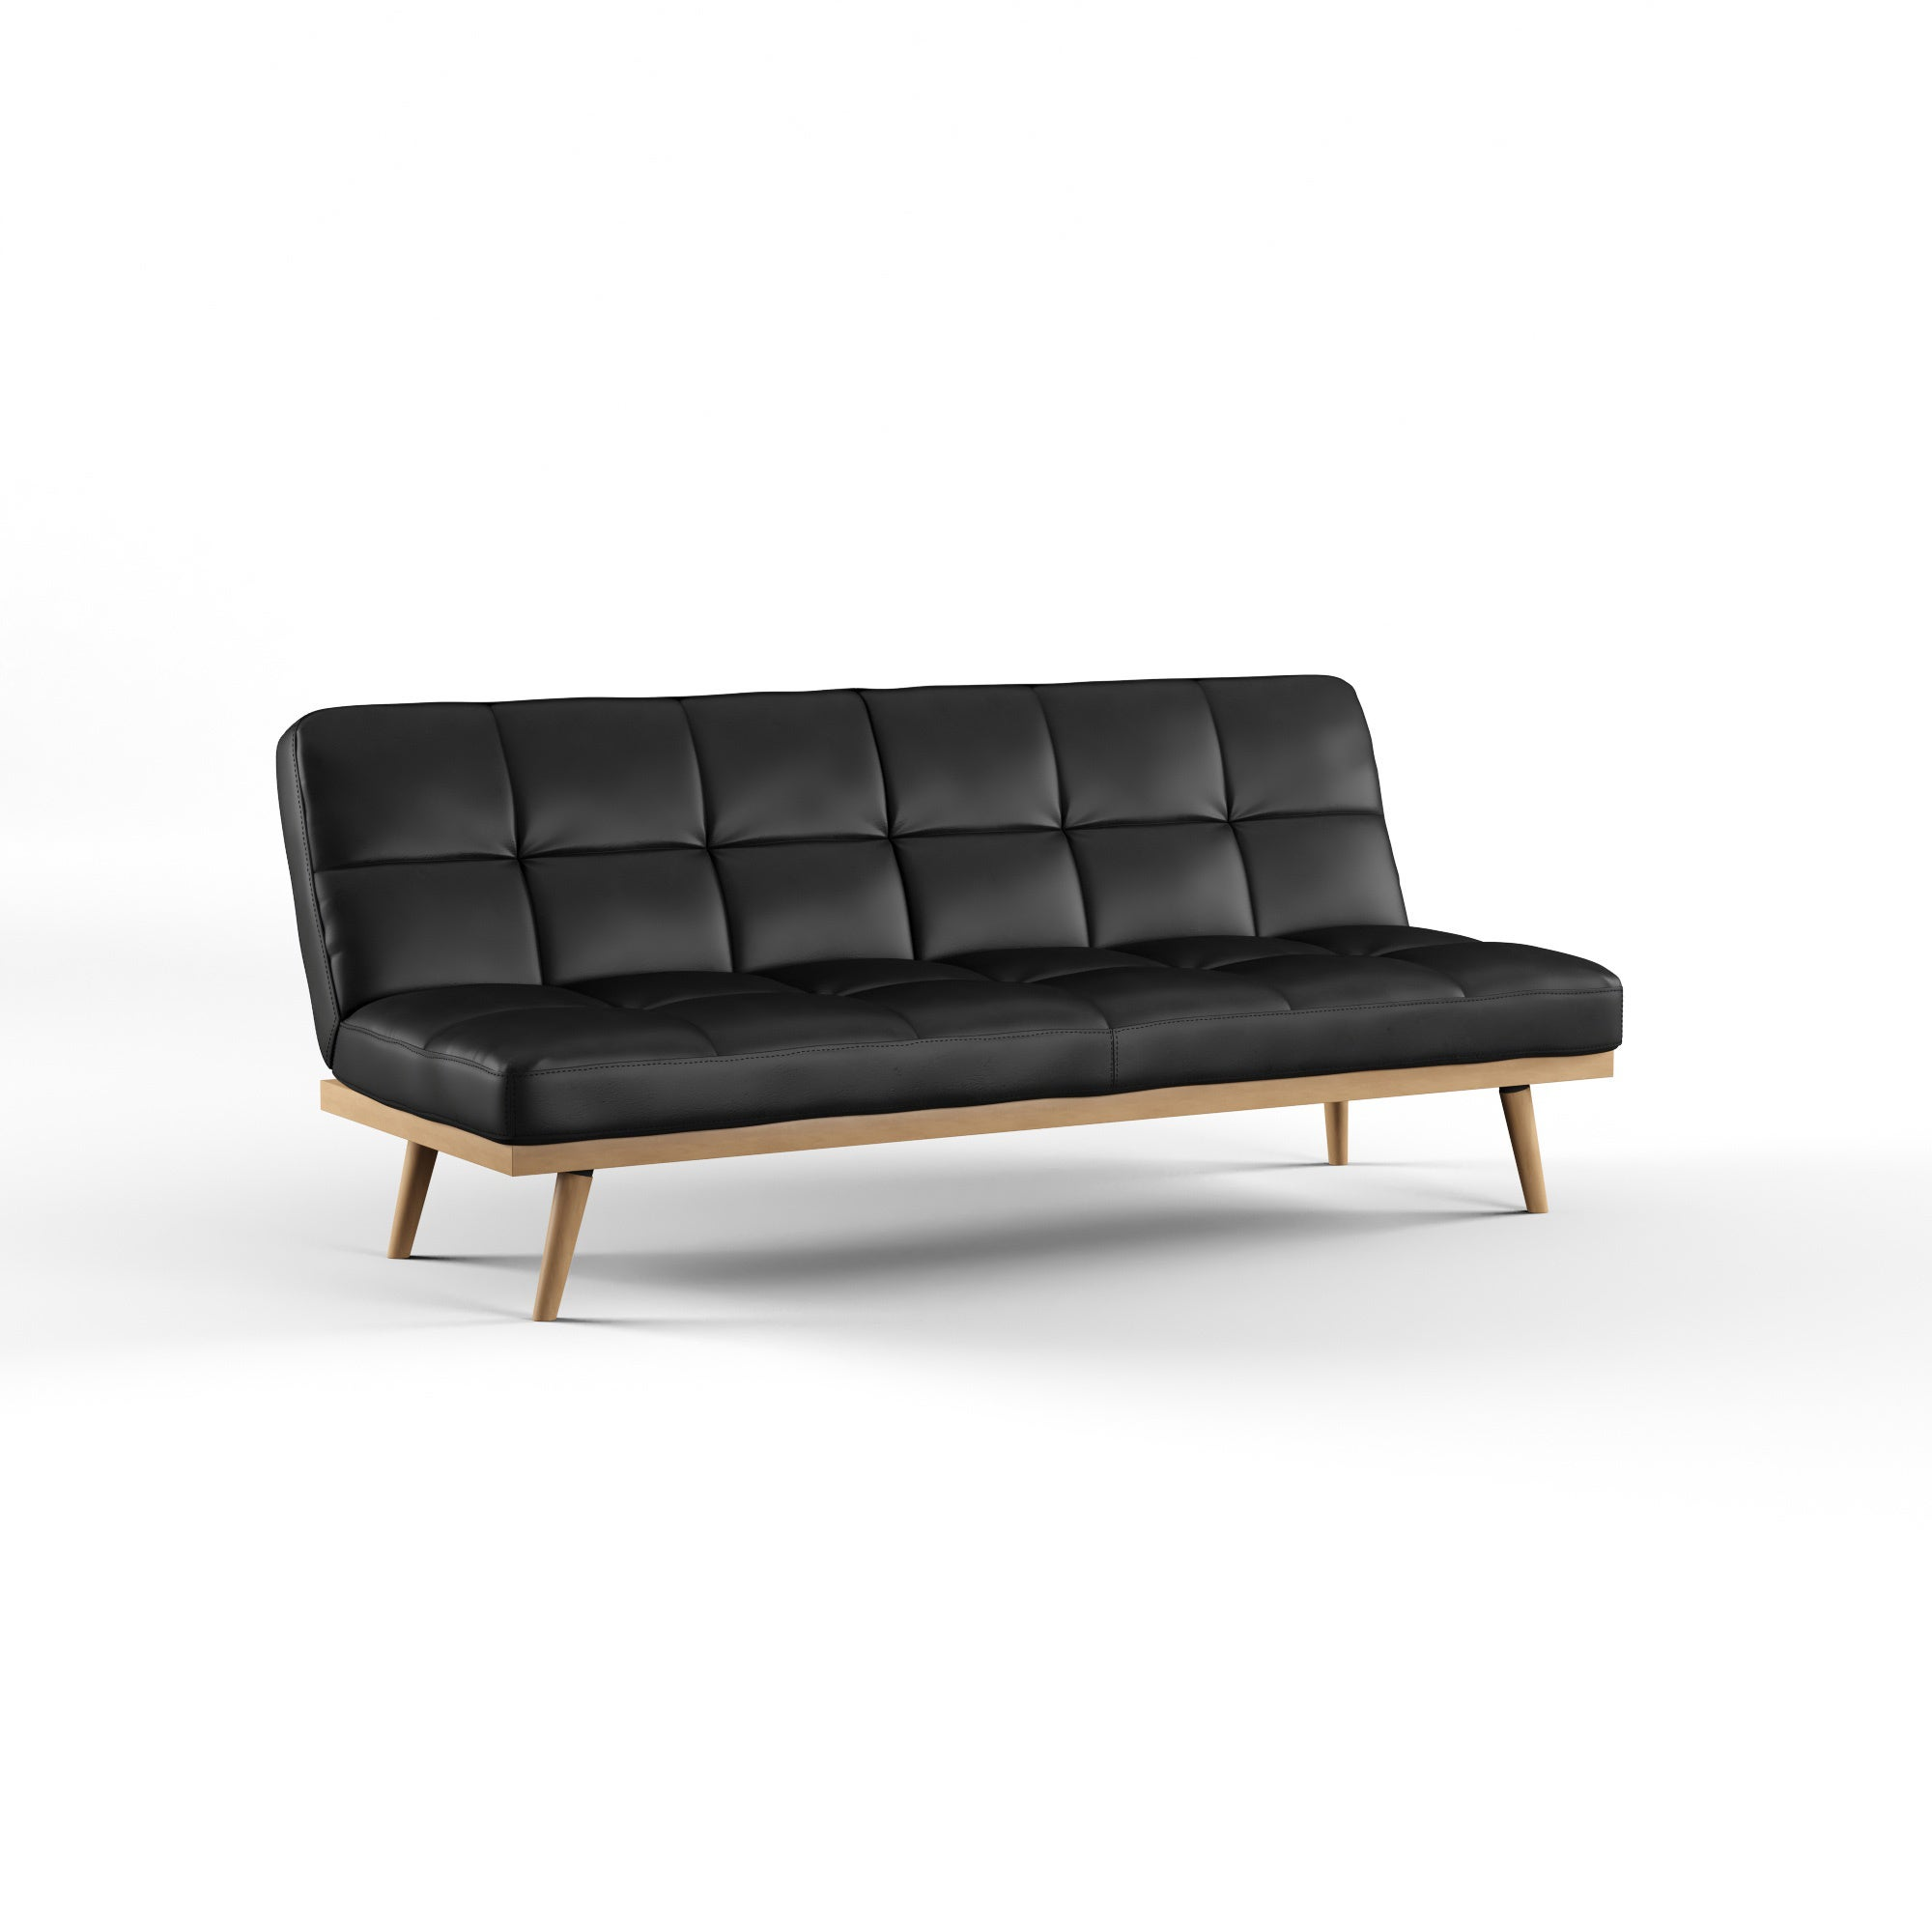 dhp leather used black emily couch buy sofas off faux convertible futon